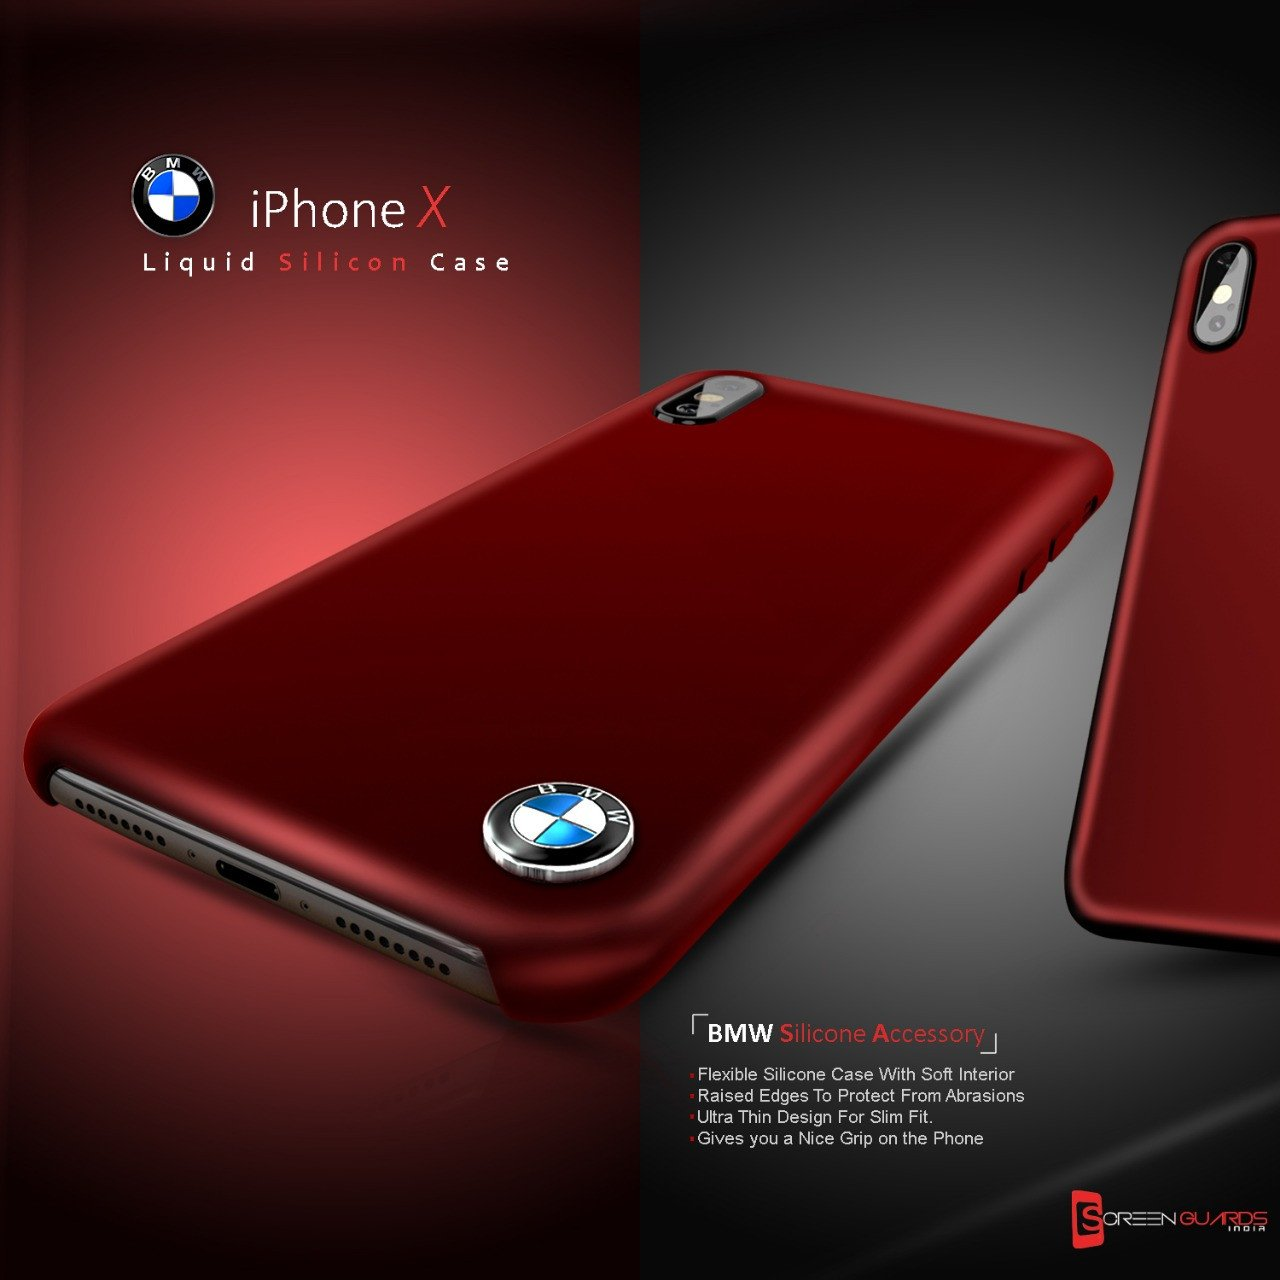 Bmw 174 Apple Iphone X Liquid Silicon Luxurious Case Limited Edition Back Cover Screen Guards India